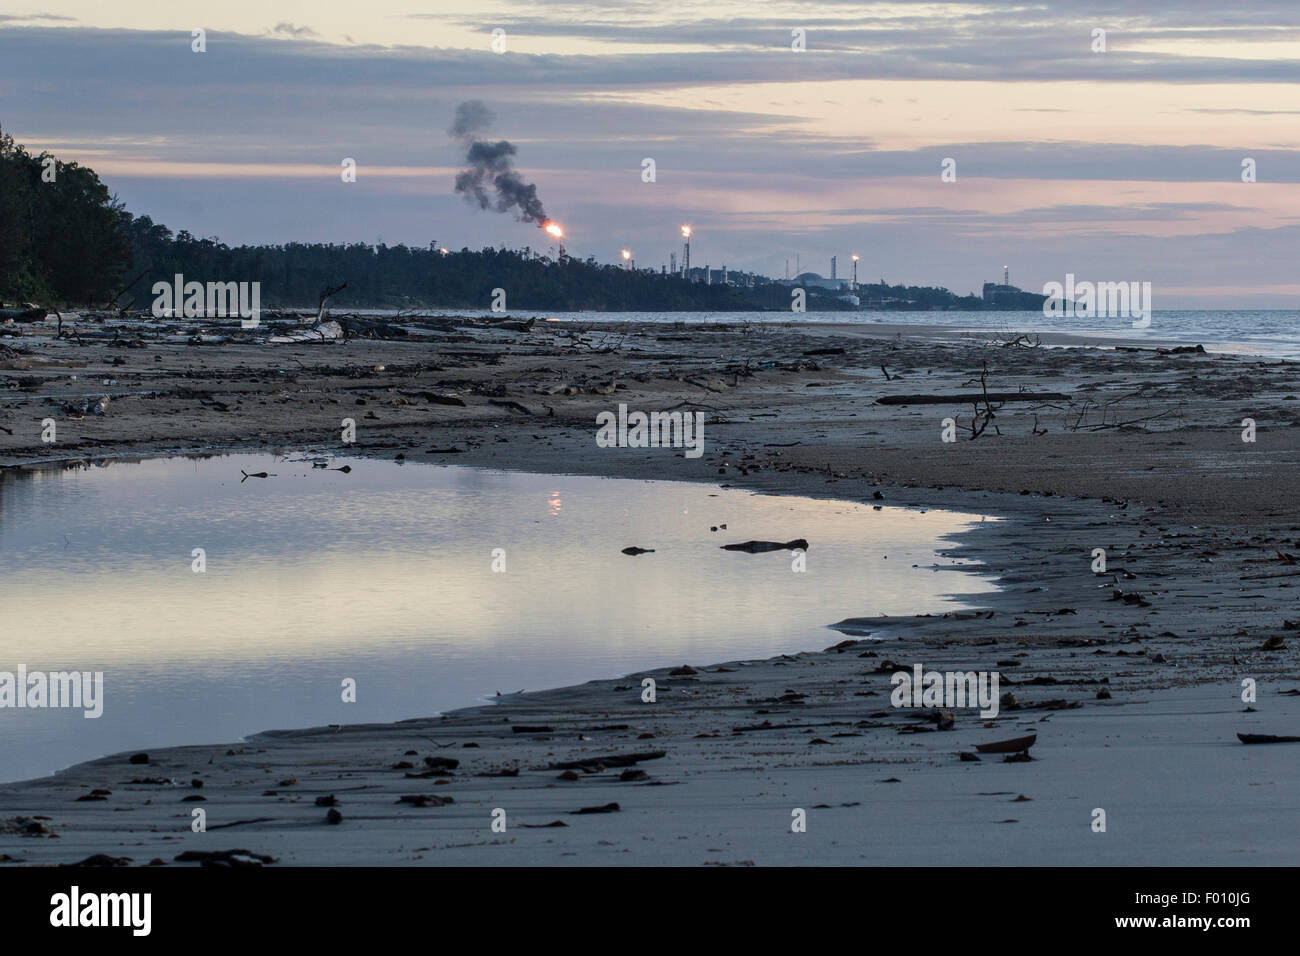 Gas flare at natural gas complex, as viewed from a nearby beach. - Stock Image